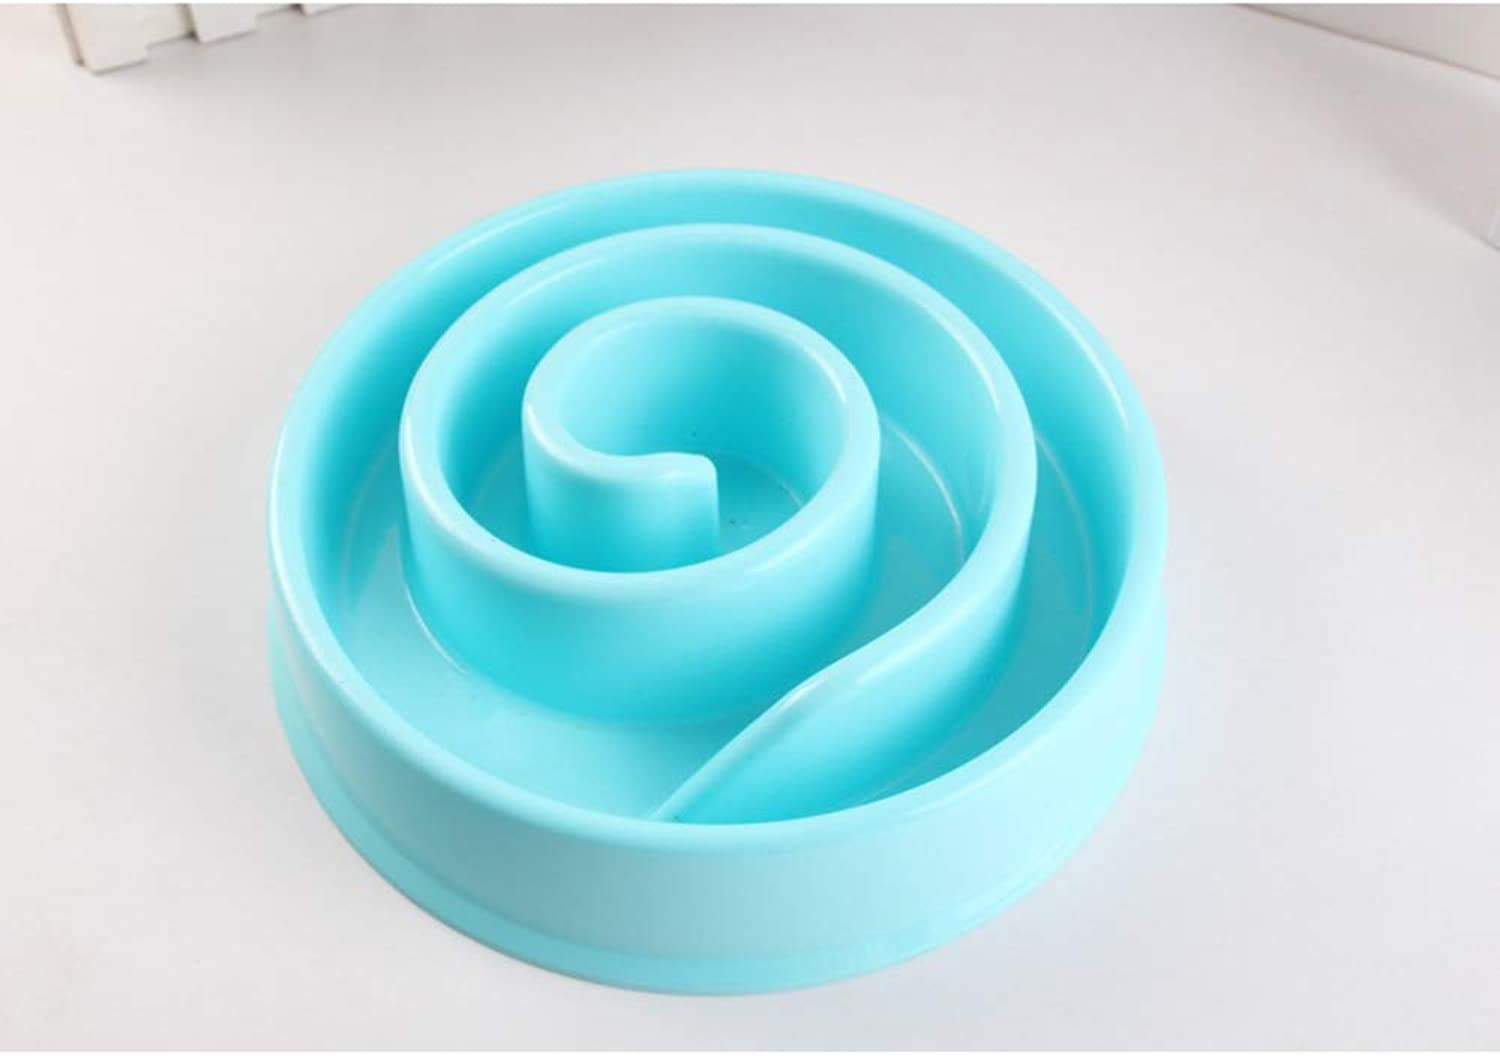 Anti Choke Pet Dog Feeding Bowls Plastic Snail Shape Slow Down Eating Food Prevent Obesity Healthy Diet Dog Accessories